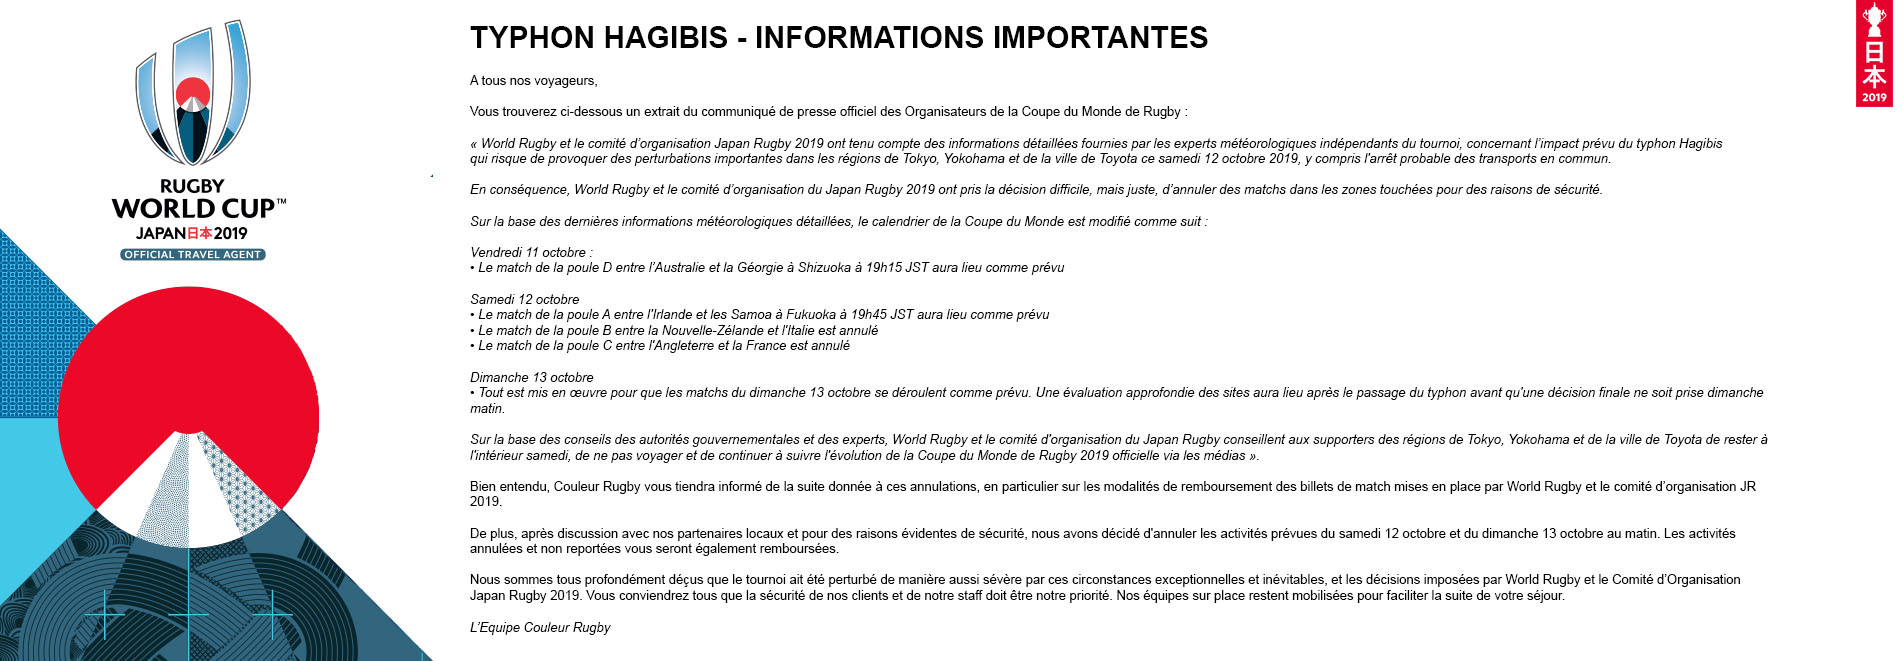 Informations importantes Typhon